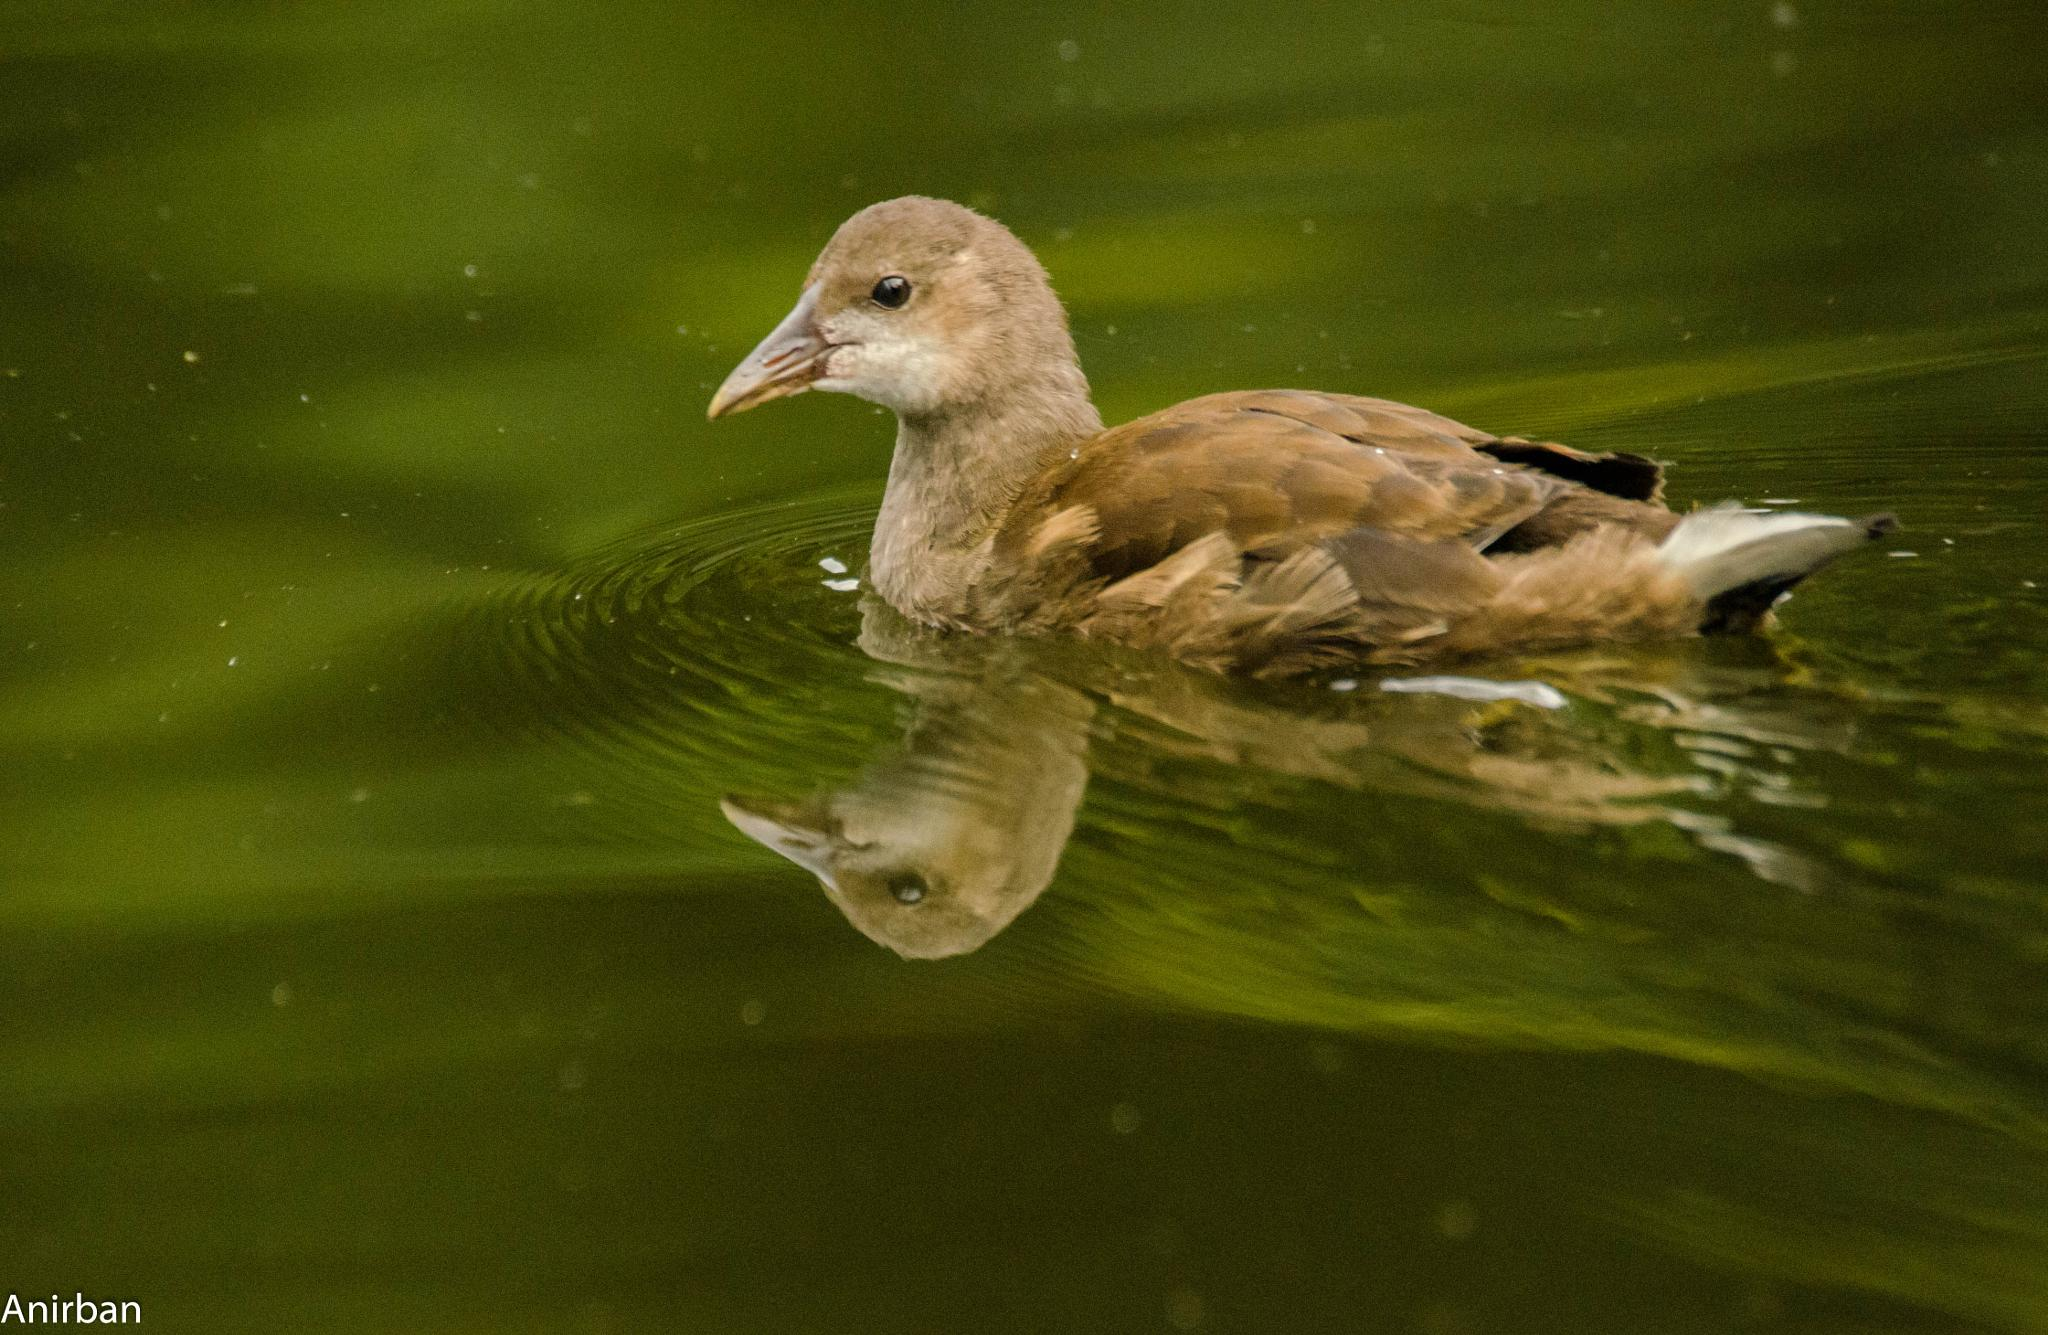 Portrait of a Swimming female Moorhen chick by Anirban Mukhopadhyay